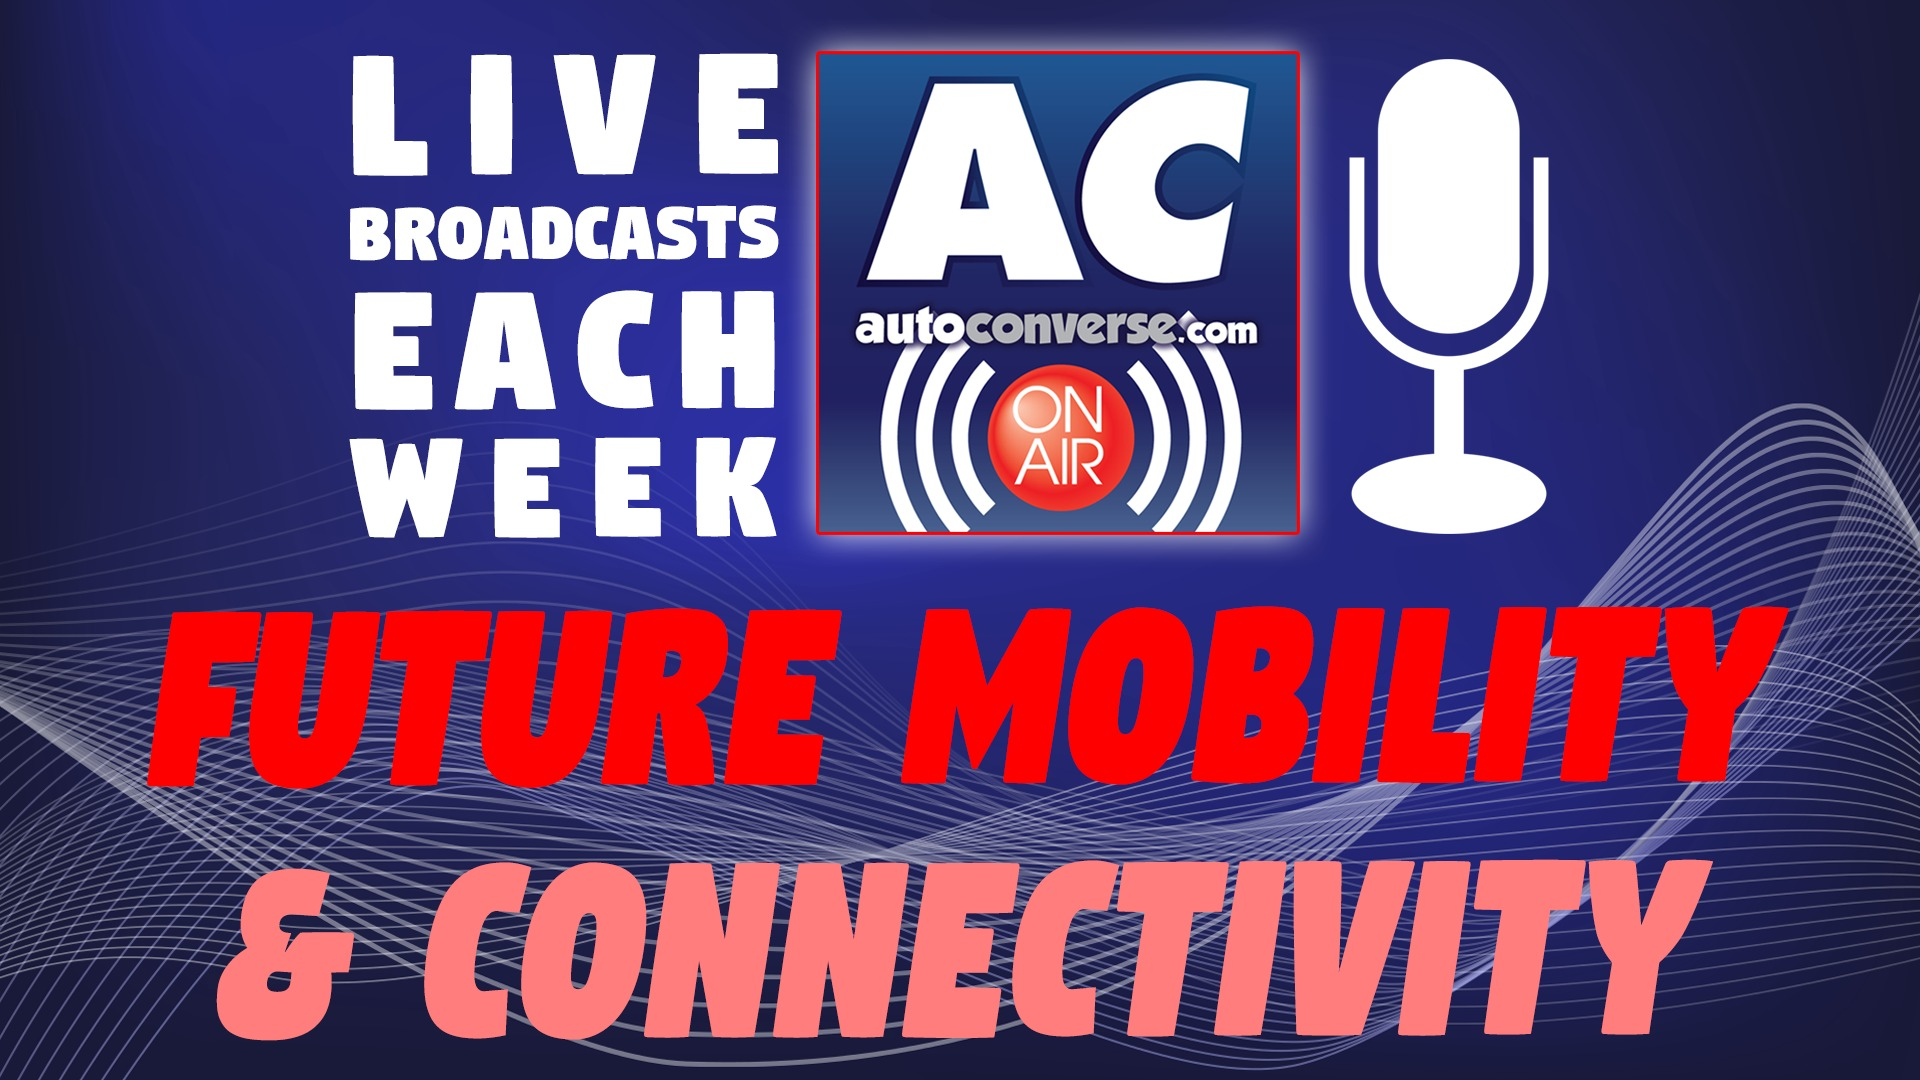 AutoConverse ON AIR Live Weekly Broadcast